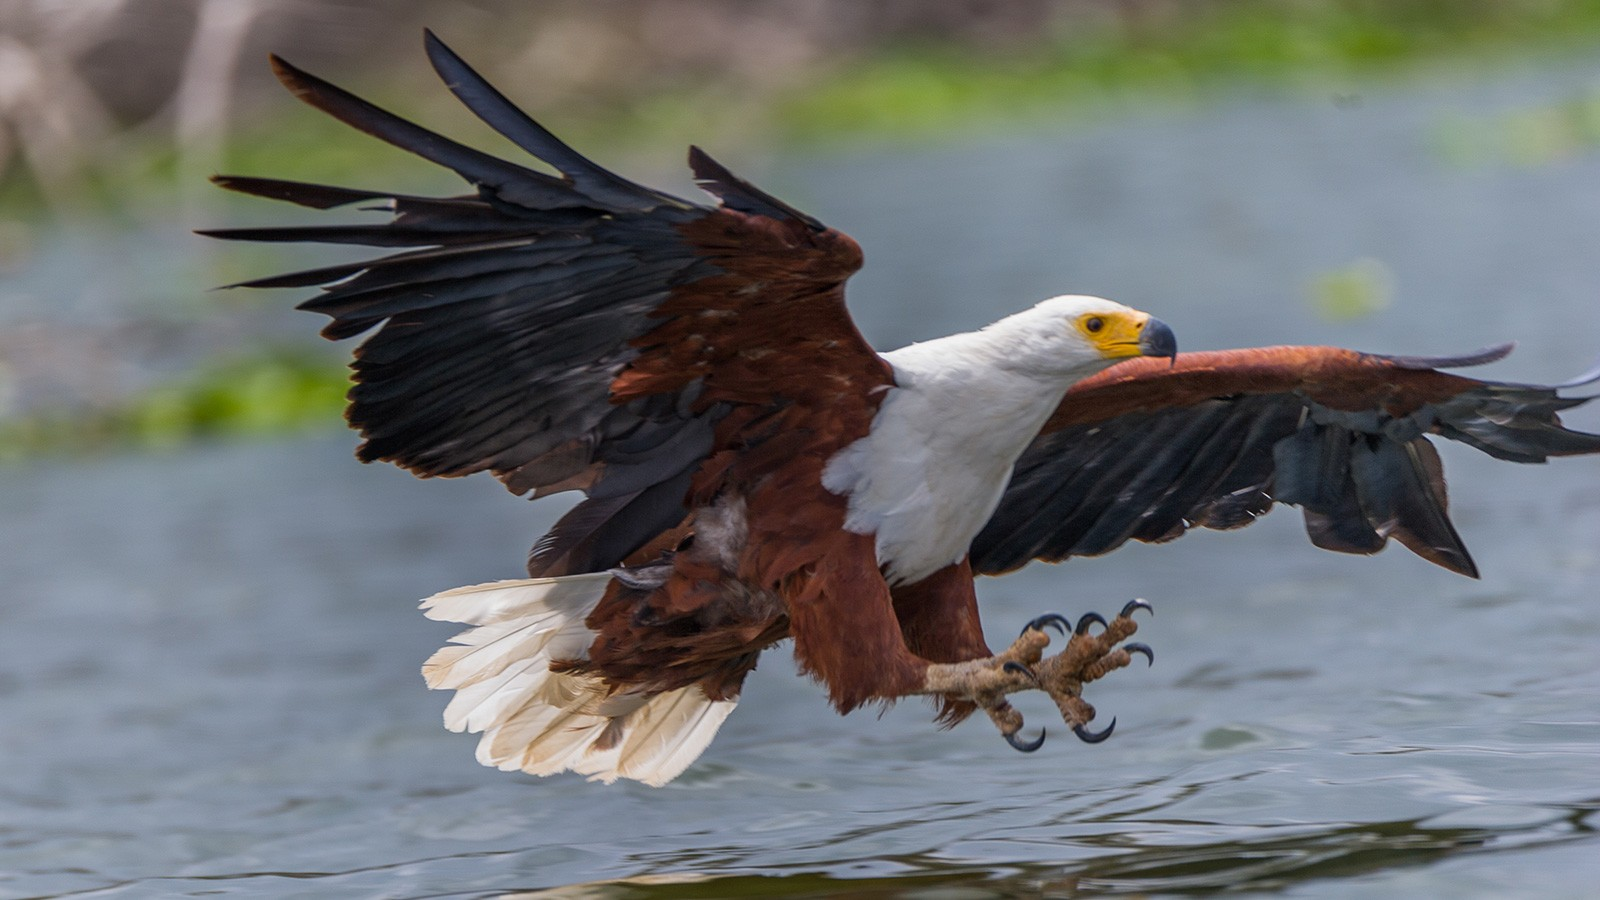 carnivorous african eagle about to catch fish